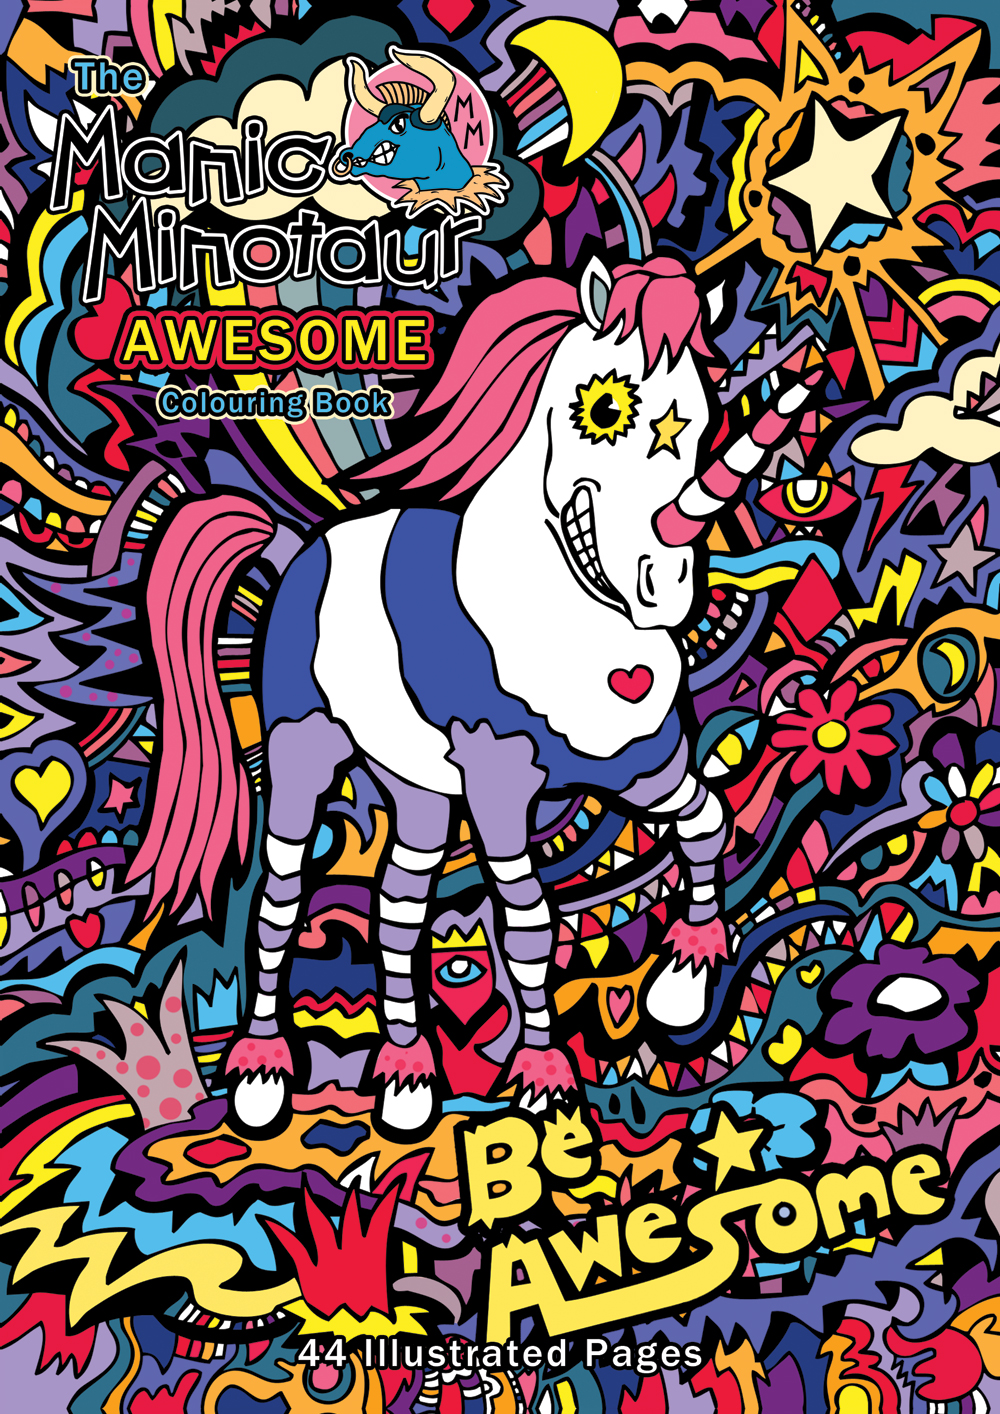 Manic Minotaur AWESOME Colouring Book